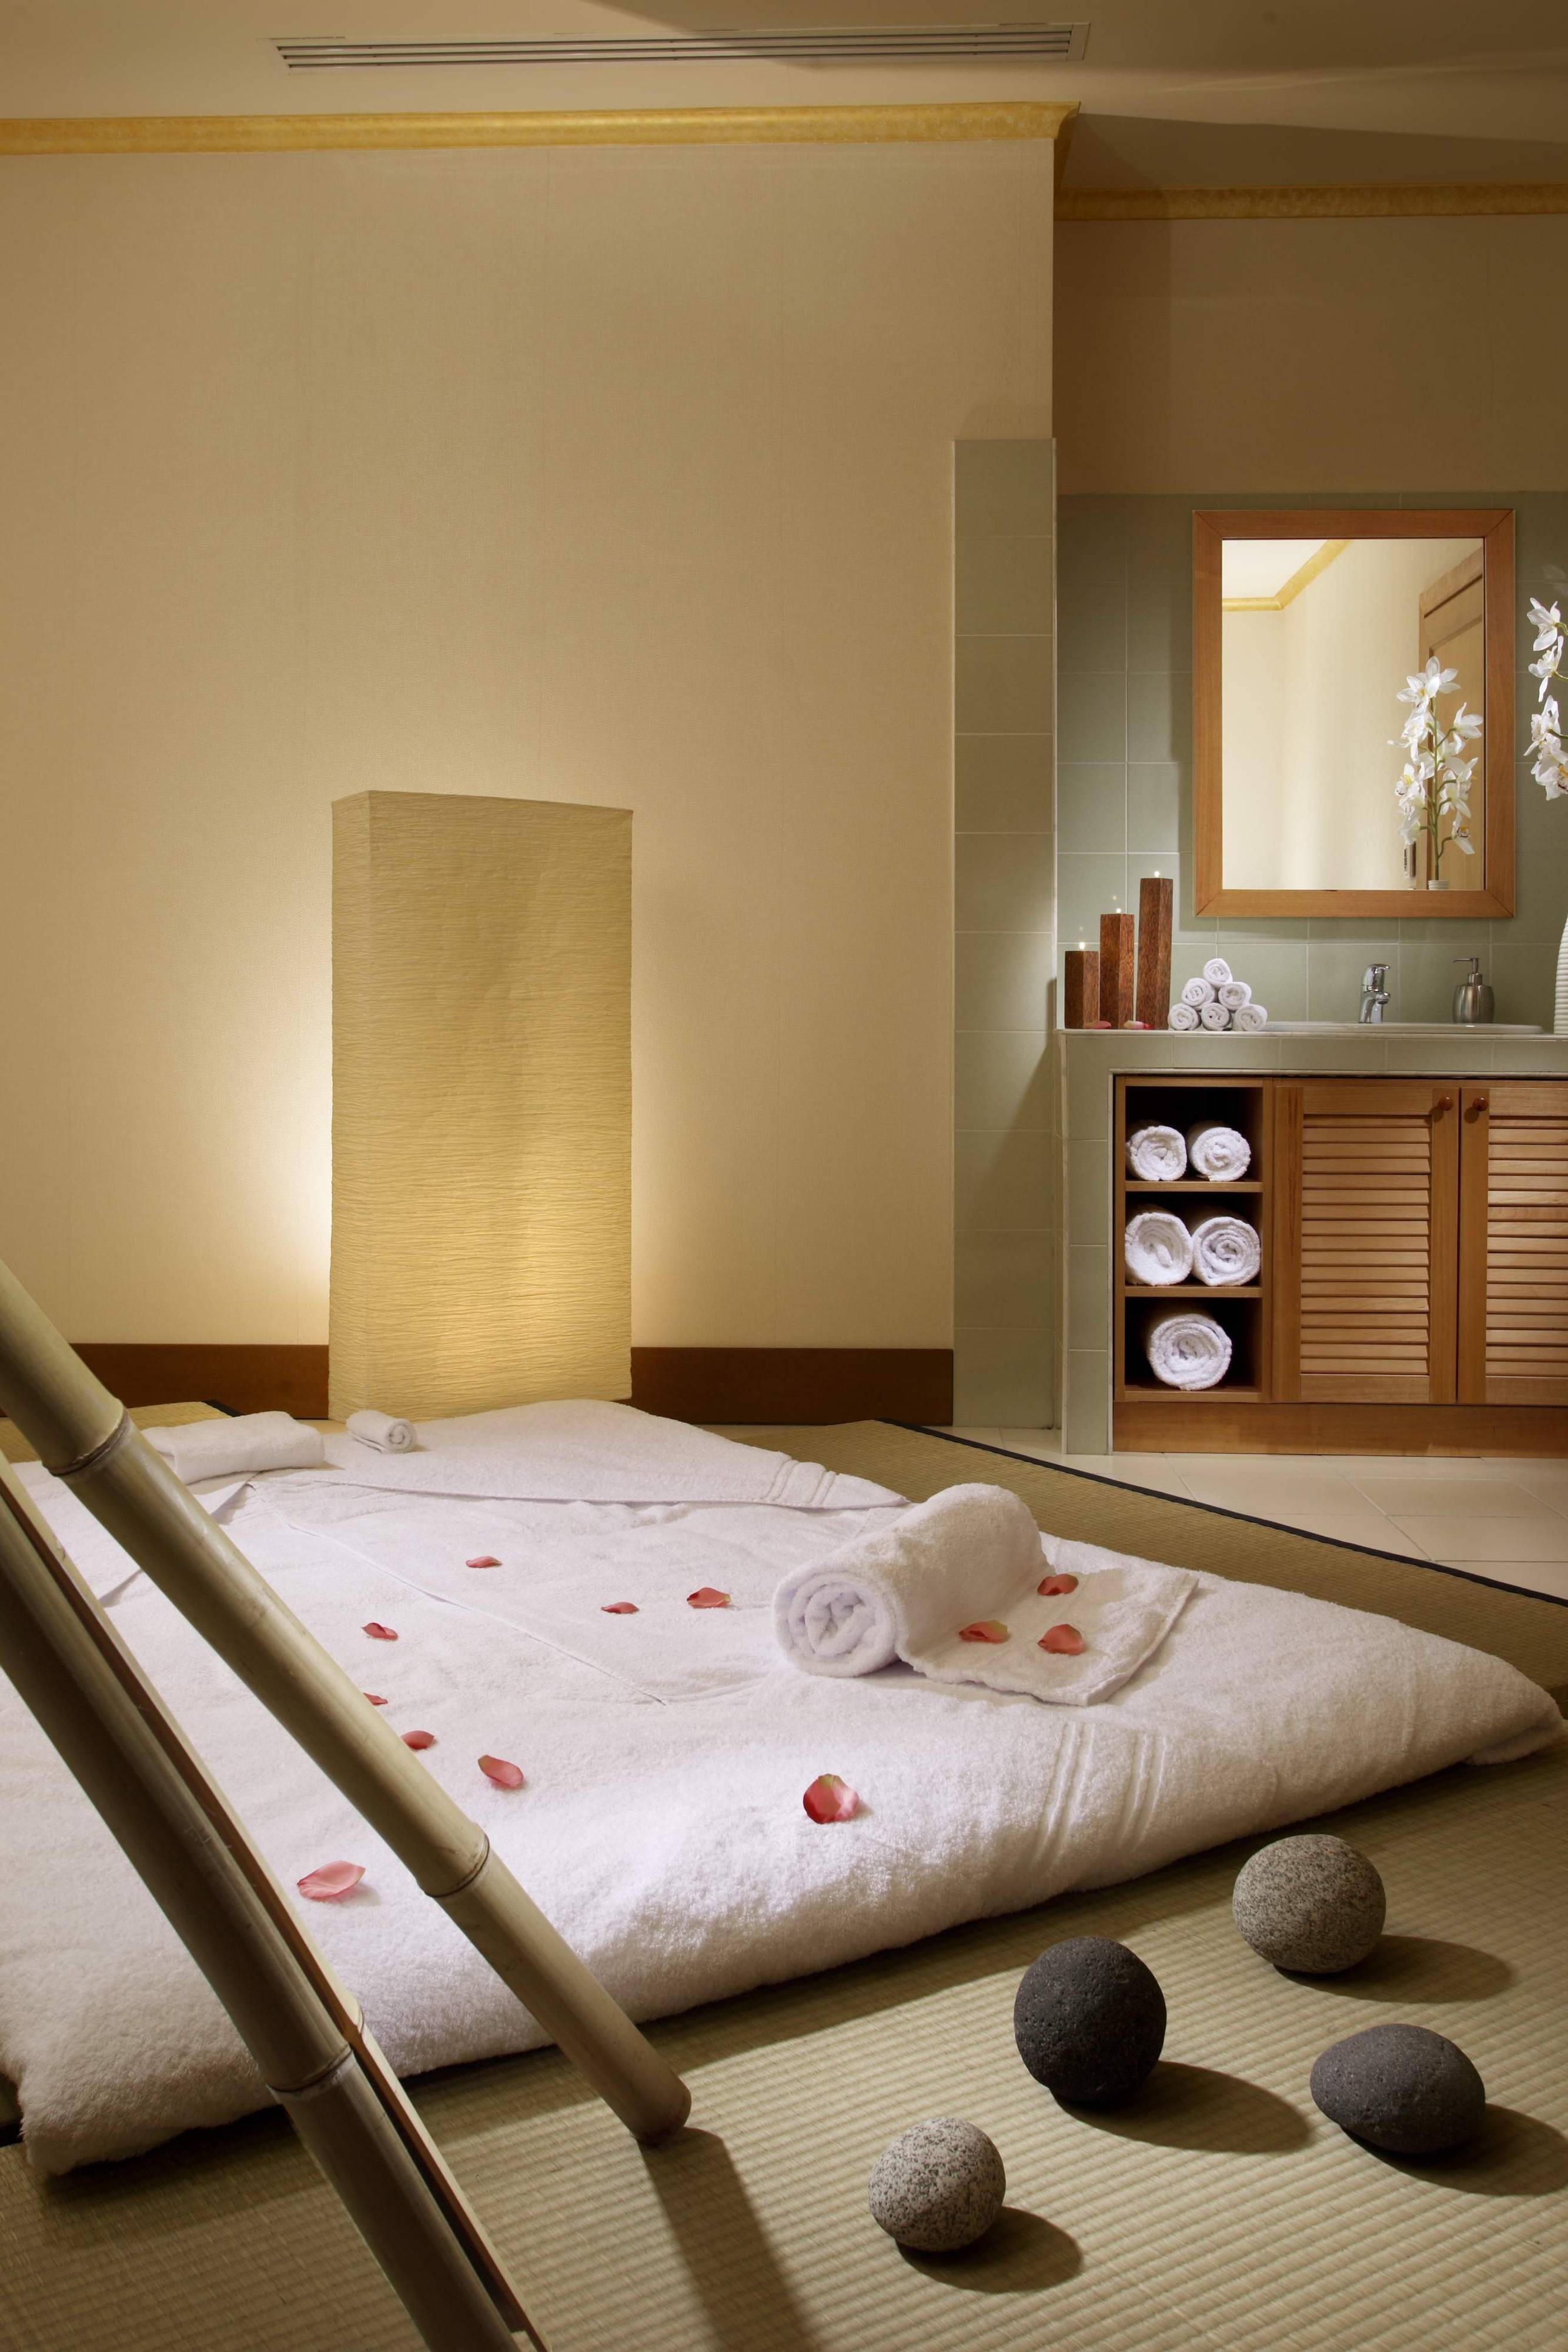 Rome hotel spa facilities